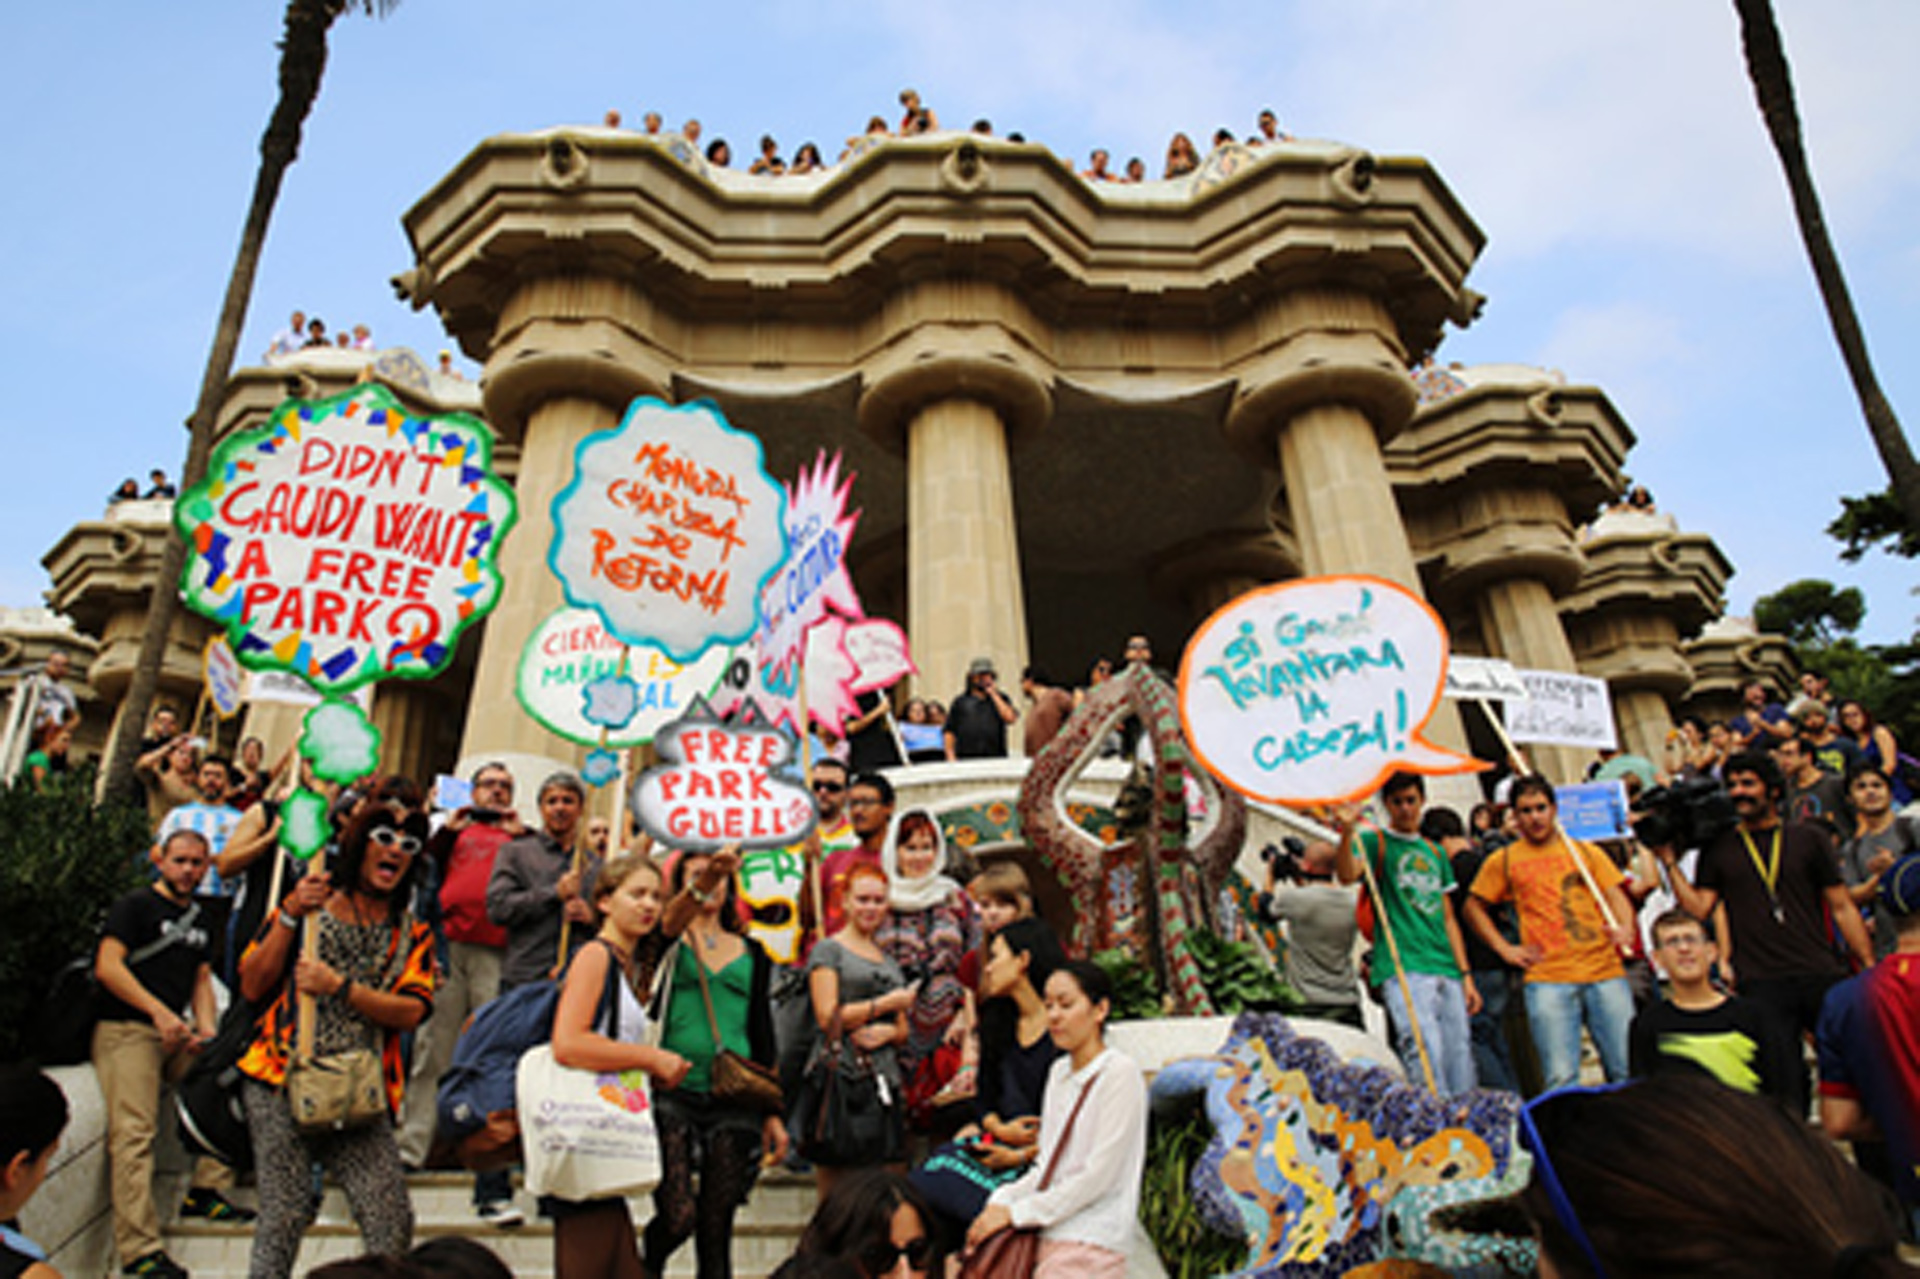 GLOBAL CITY TOUR: Protest & Resistance in the Tourist City